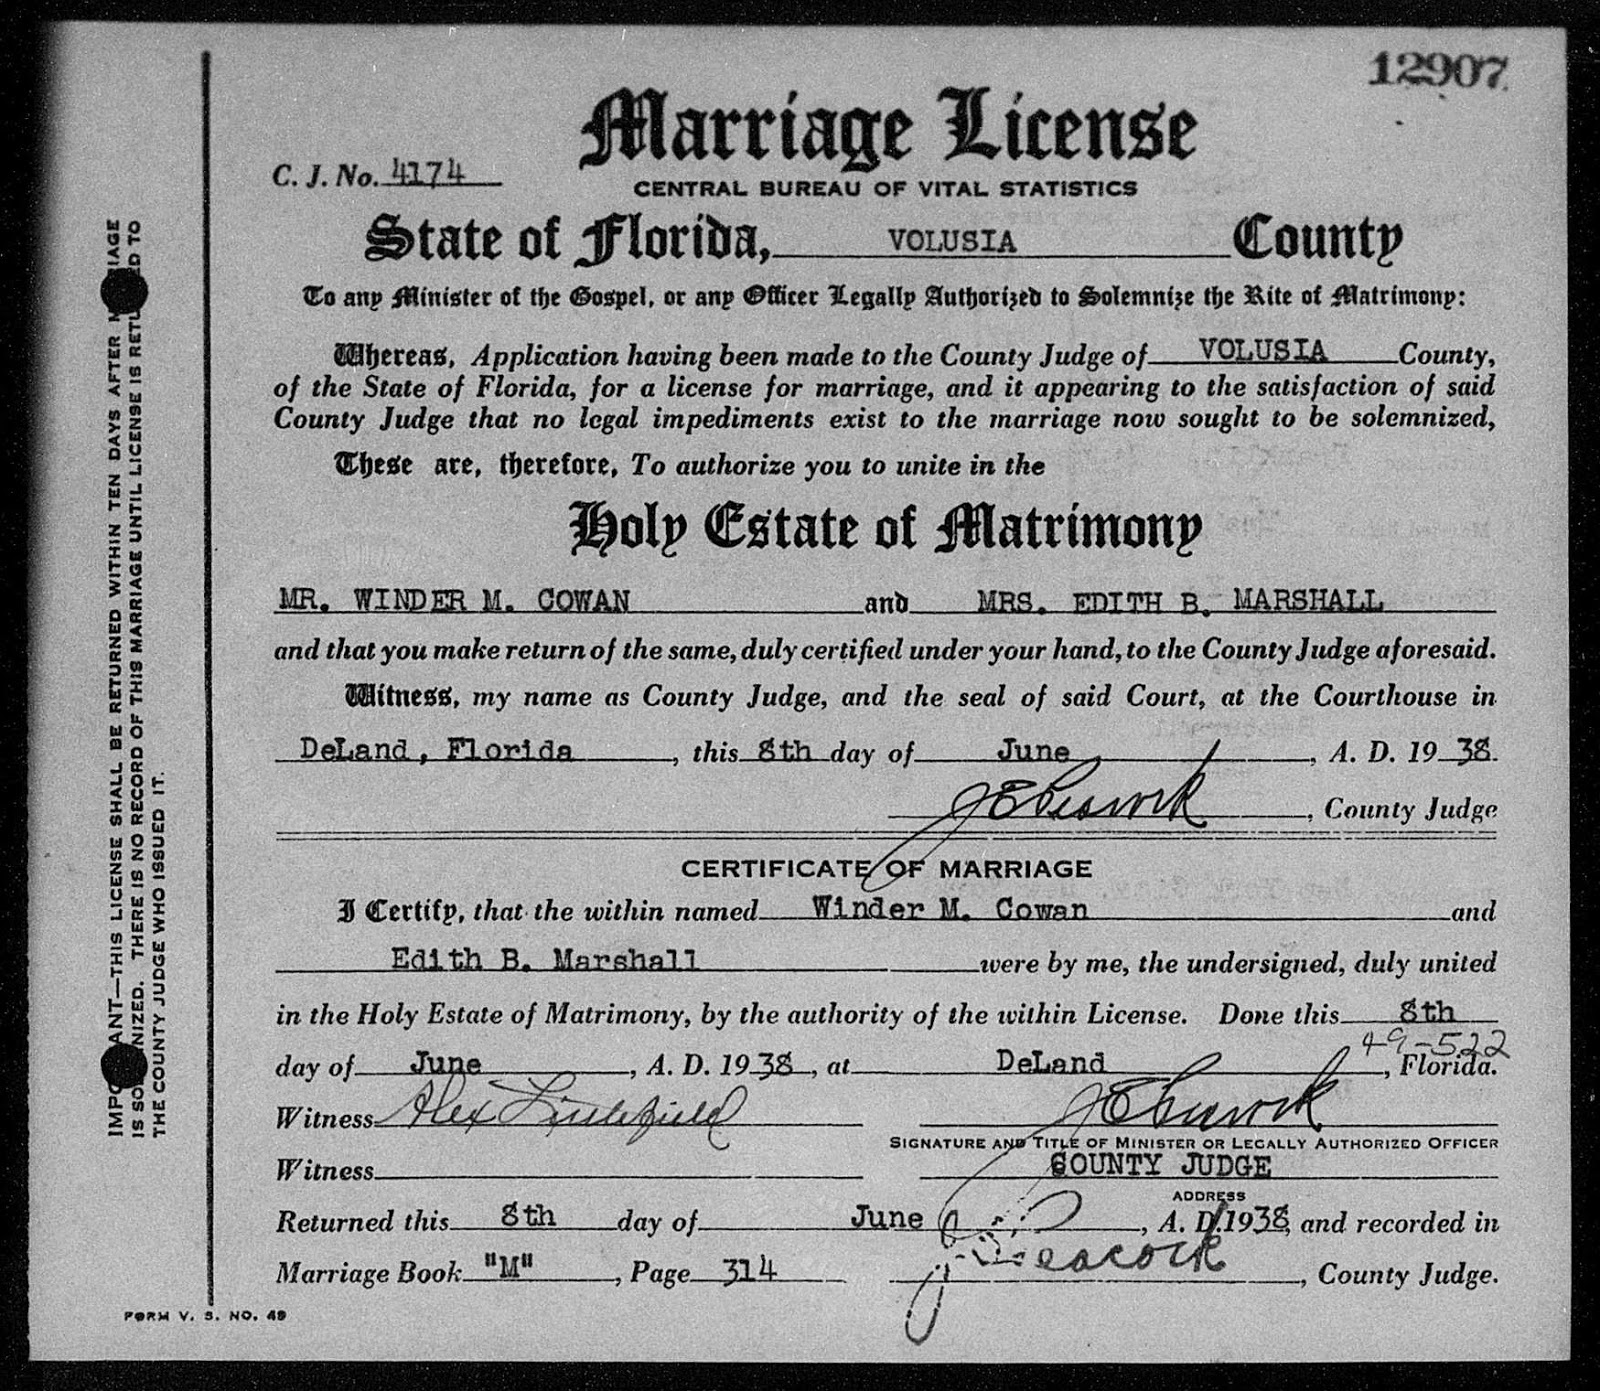 The biele family blog edith biele and red cowan marriage license of edith biele and winder cowan on june 8 1938 daytona beach florida xflitez Gallery